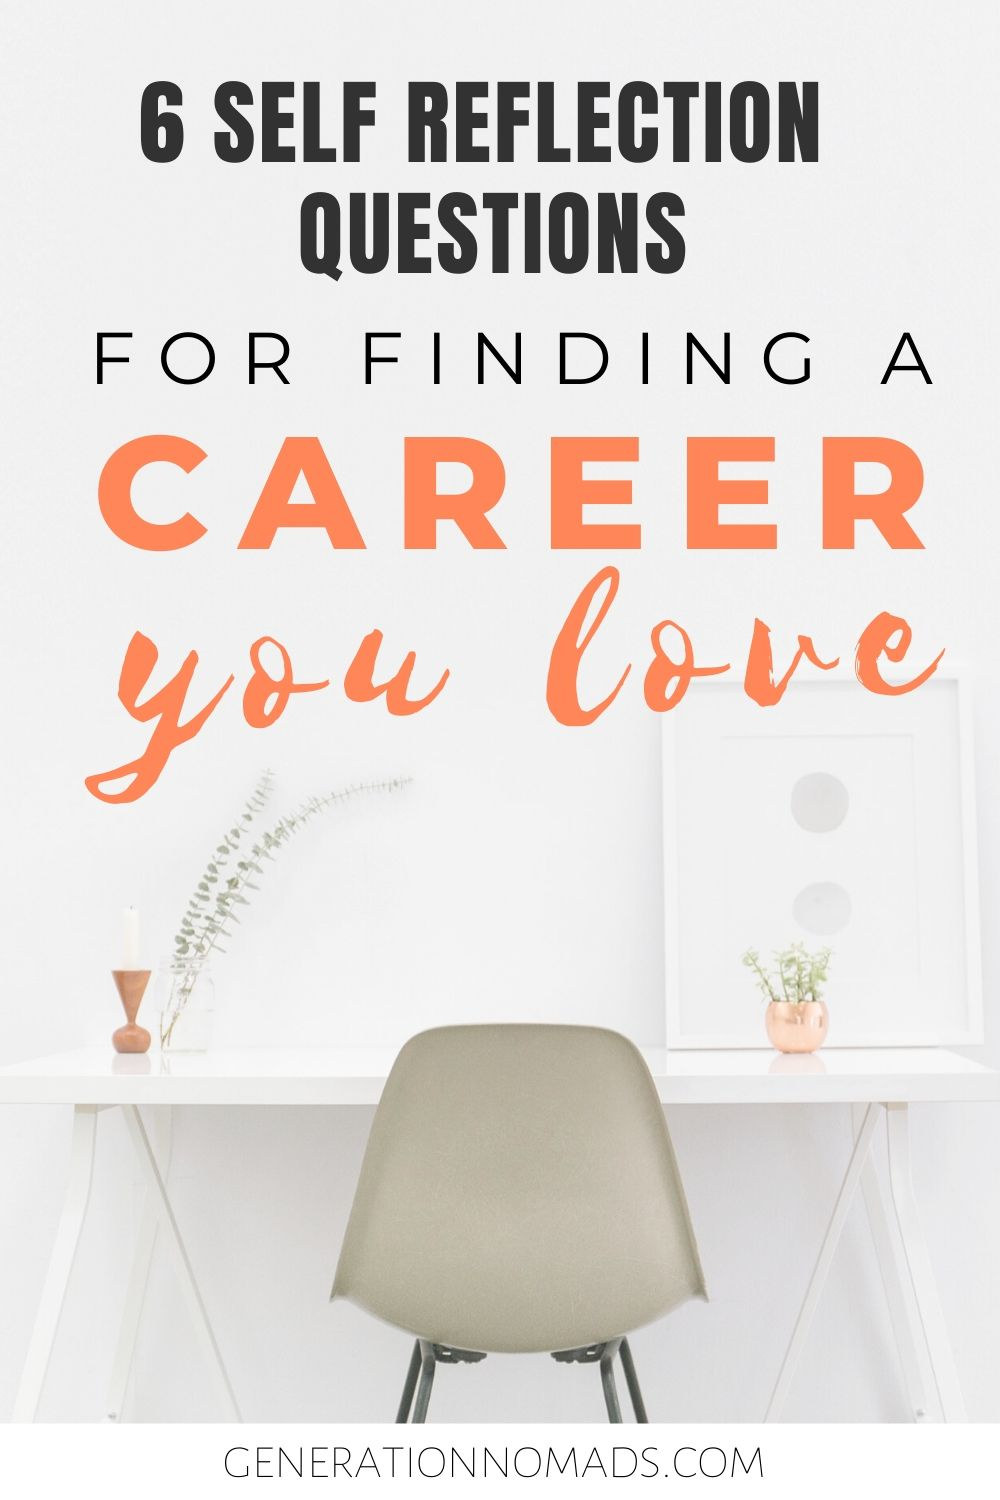 Do you dream of finding a career that you truly love? Your tired of working the 9-5 hustle and finally want to start following your passion? We have 6 self reflection questions that you should ask yourself if you're feeling stuck. Get inspiration to think about what is truly important to you and how you can change career and improve life for the better.